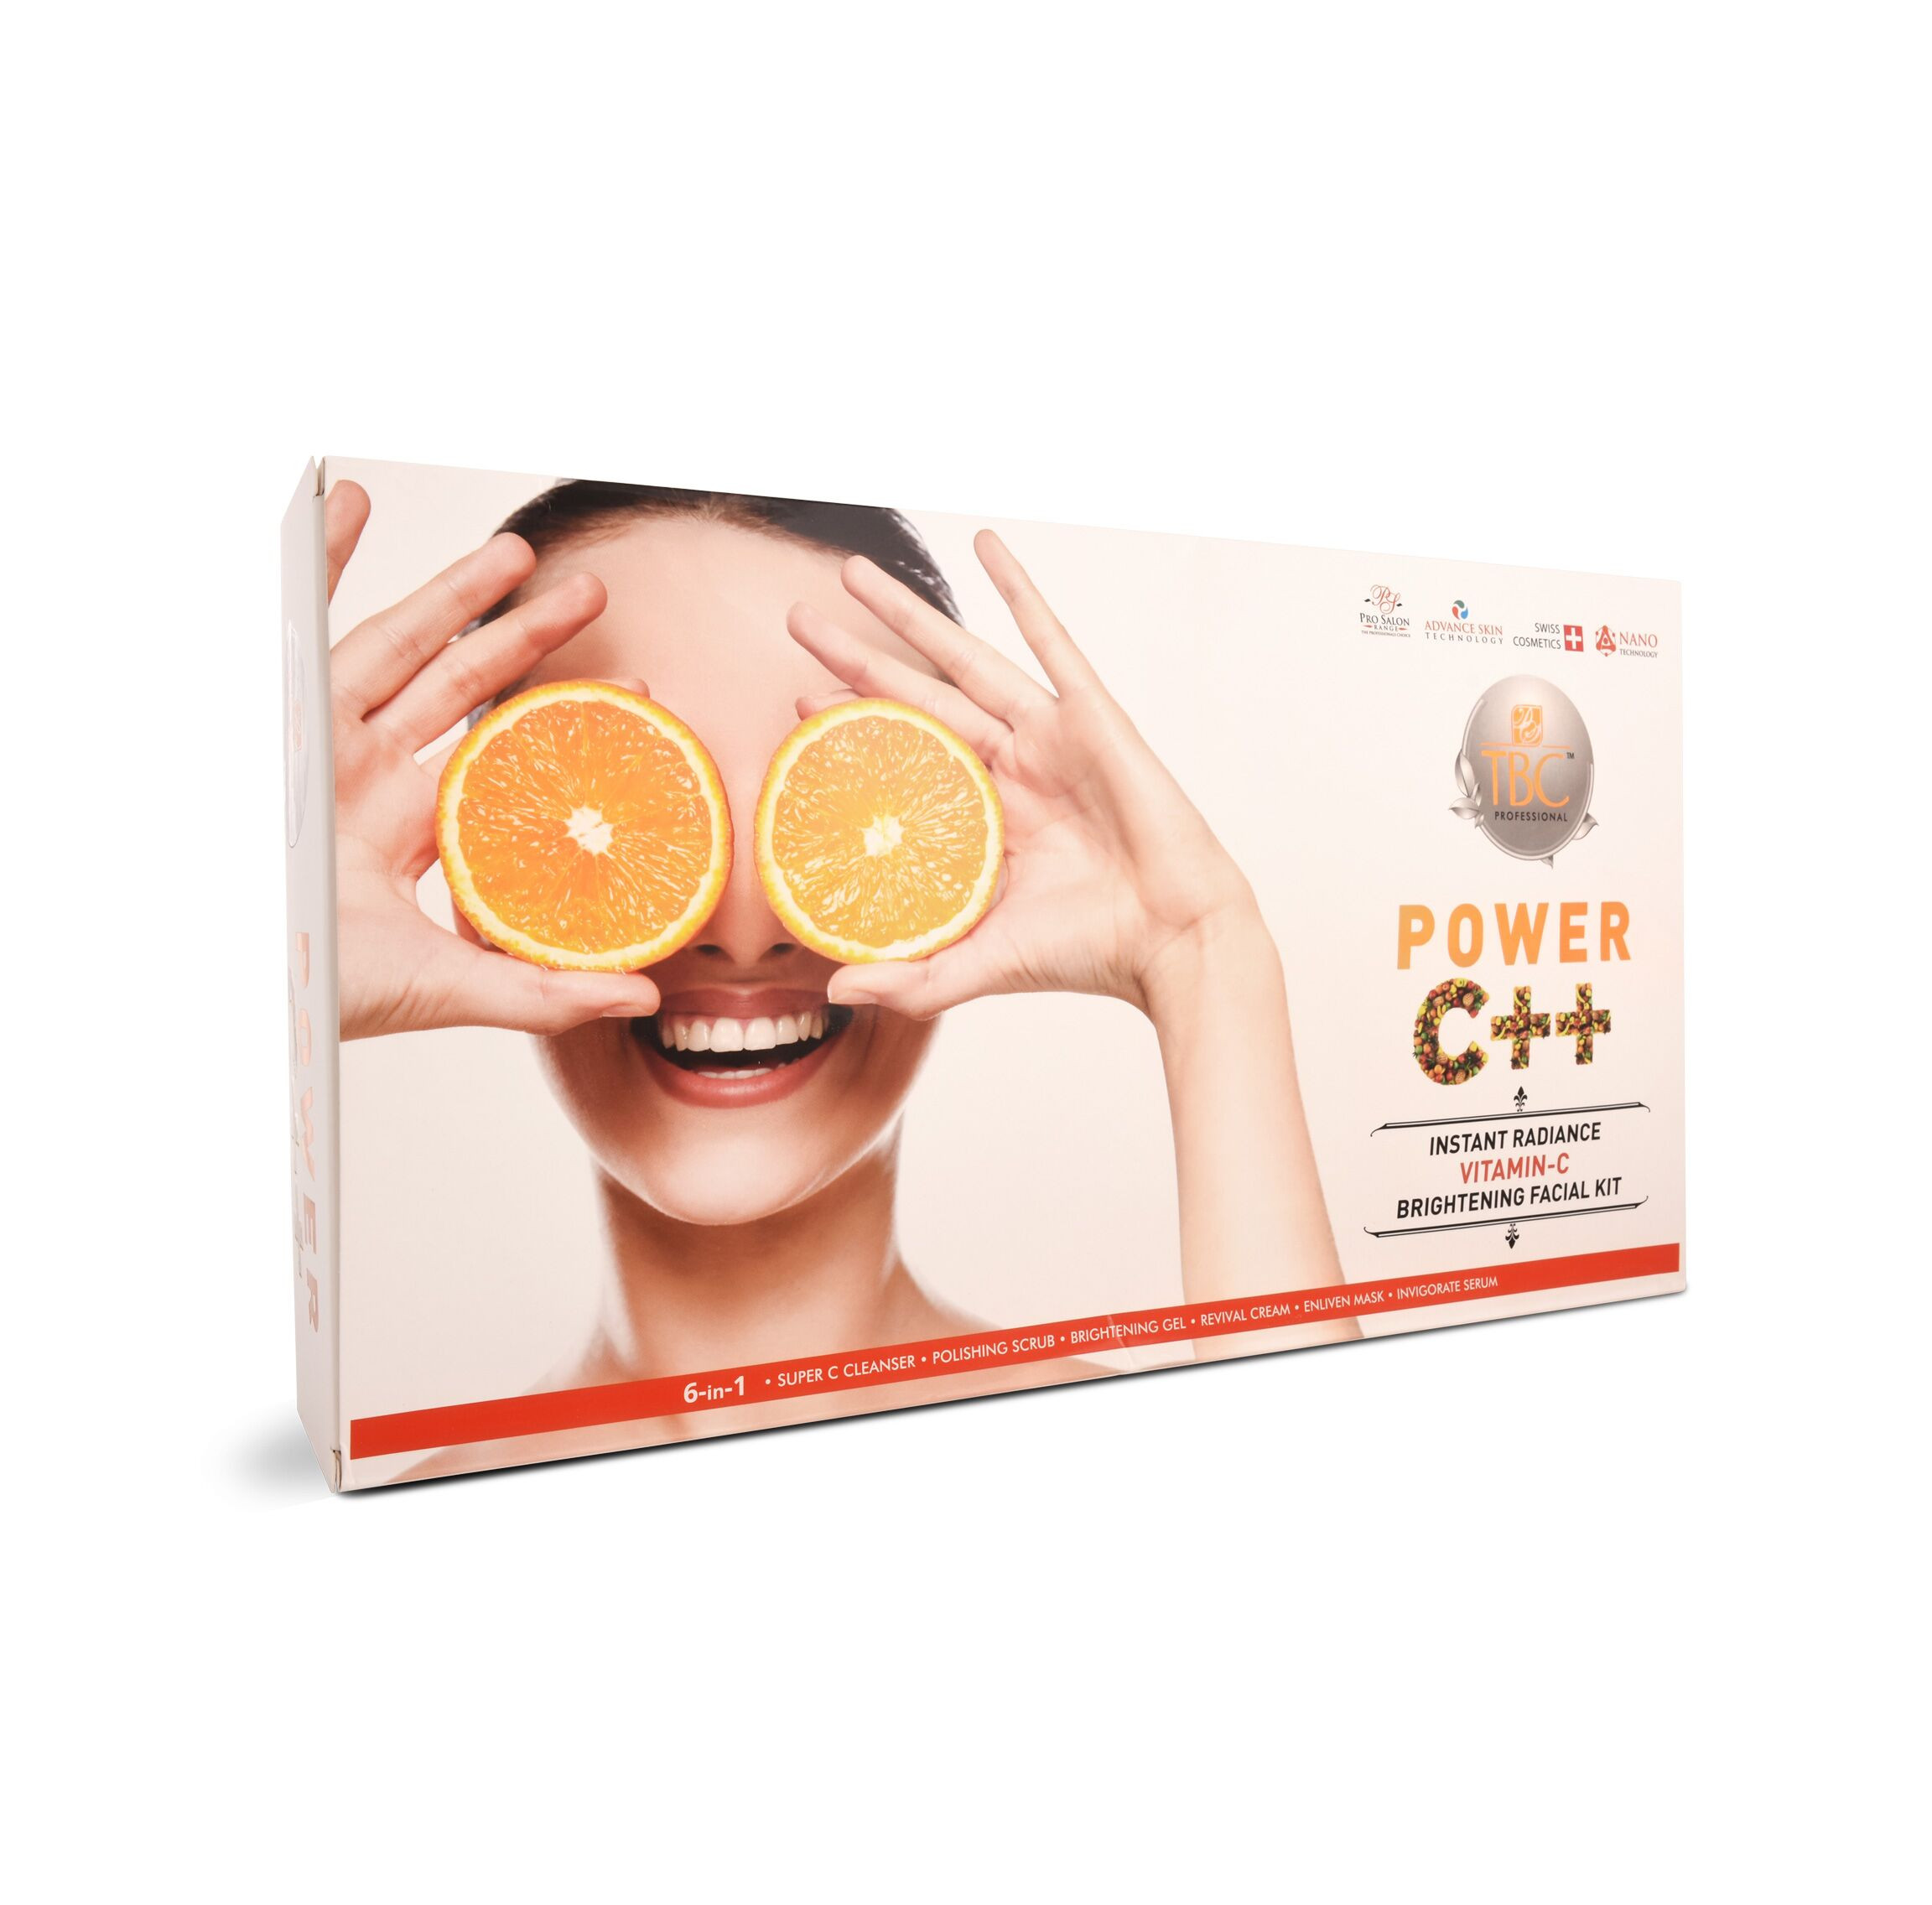 TBC Pro Instant Radiance C Brightening Facial Kit 550Gm